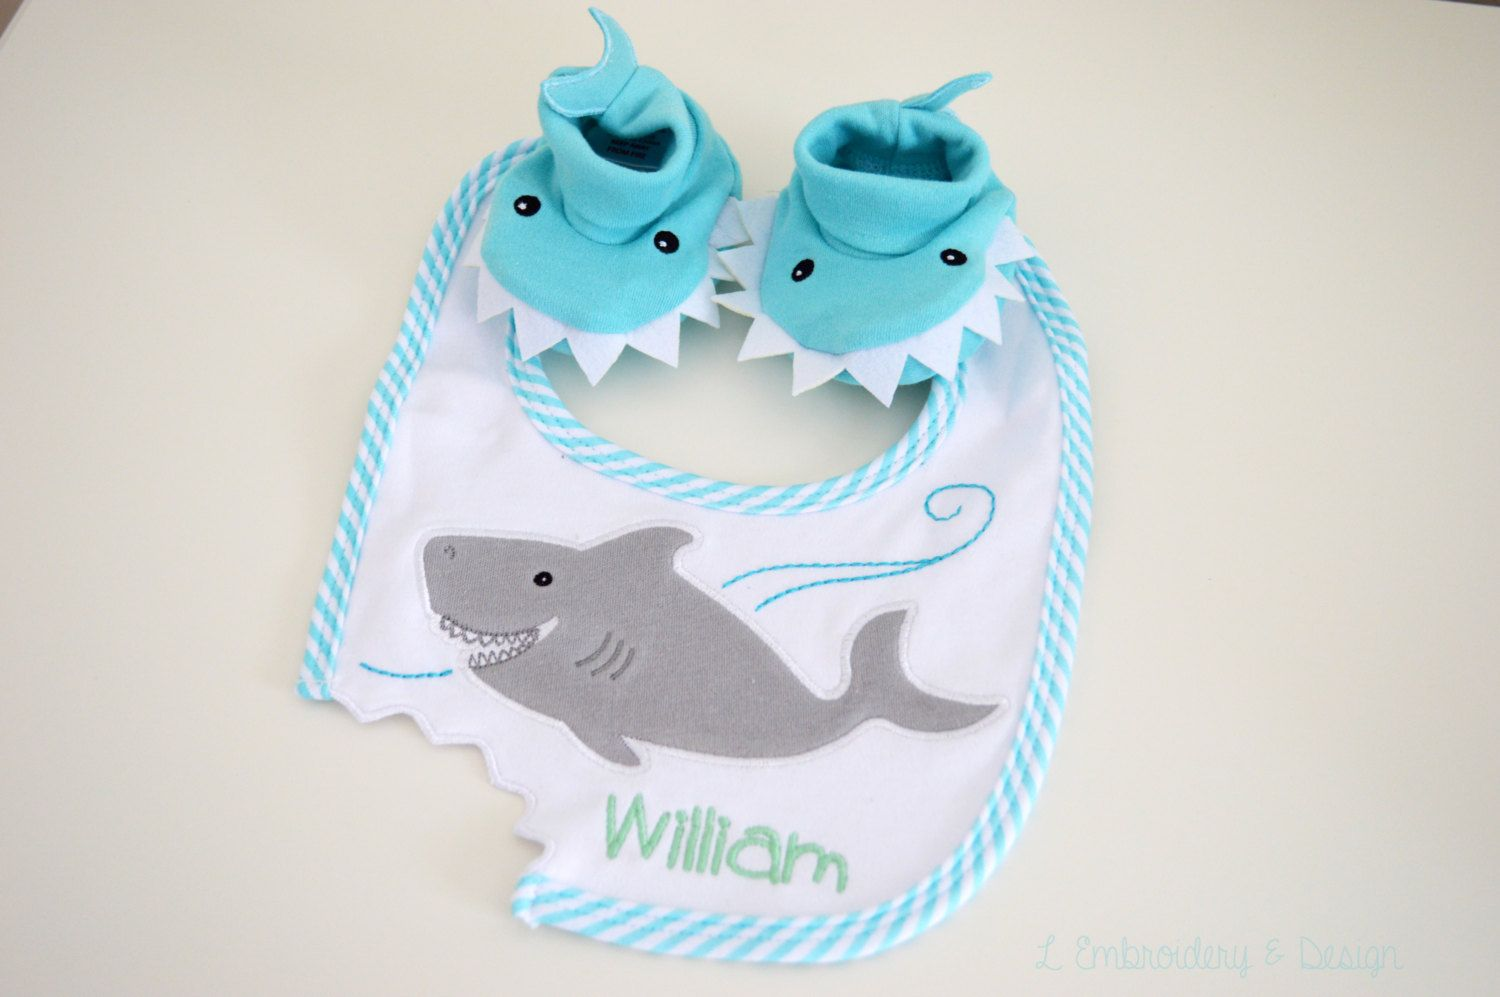 Personalized Baby Shark Bib and Booties Gift Set / Monogrammed Shark Gift Set / Chomp and Stomp Gift Set / Baby Blue Shark Bib and Booties by OysterBayEmbroidery on Etsy https://www.etsy.com/listing/203269968/personalized-baby-shark-bib-and-booties